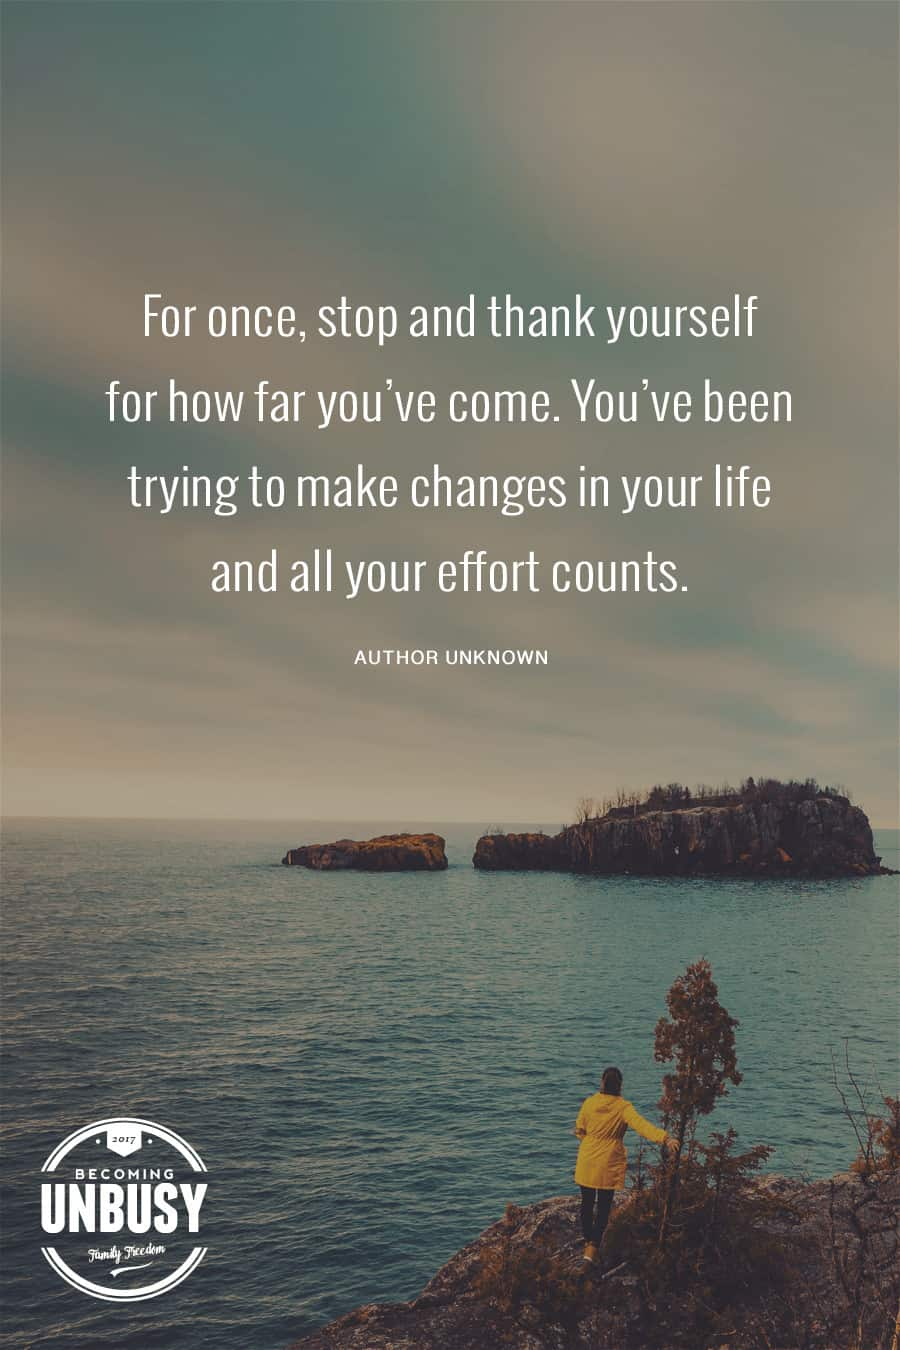 An image of a small island in a body of water with the quote, For once, stop and thank yourself for how far you've come. You've been trying to make changes in your life and all your effort counts.